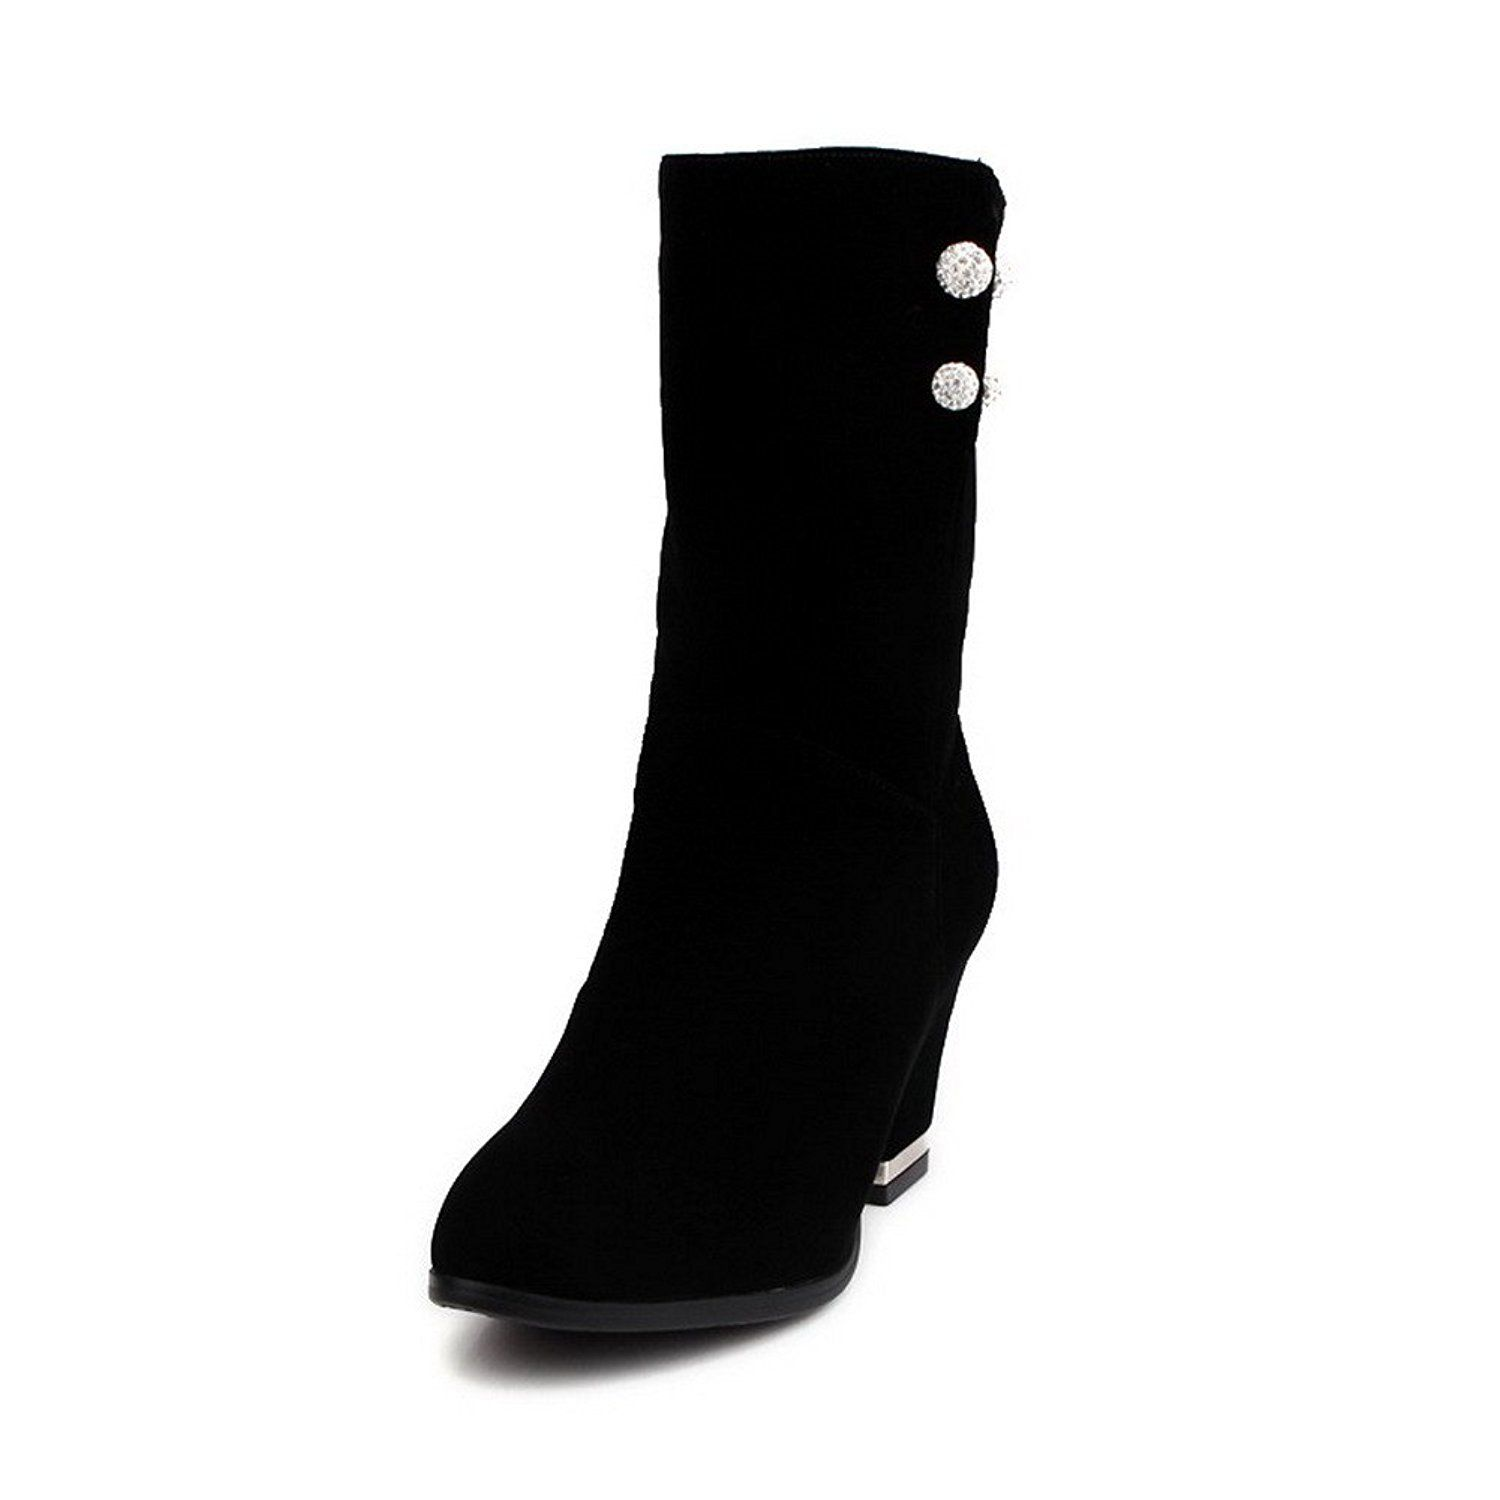 AmoonyFashion Women's Frosted Pull On Round Closed Toe High Heels Mid Top Boots * Check out the image by visiting the link.